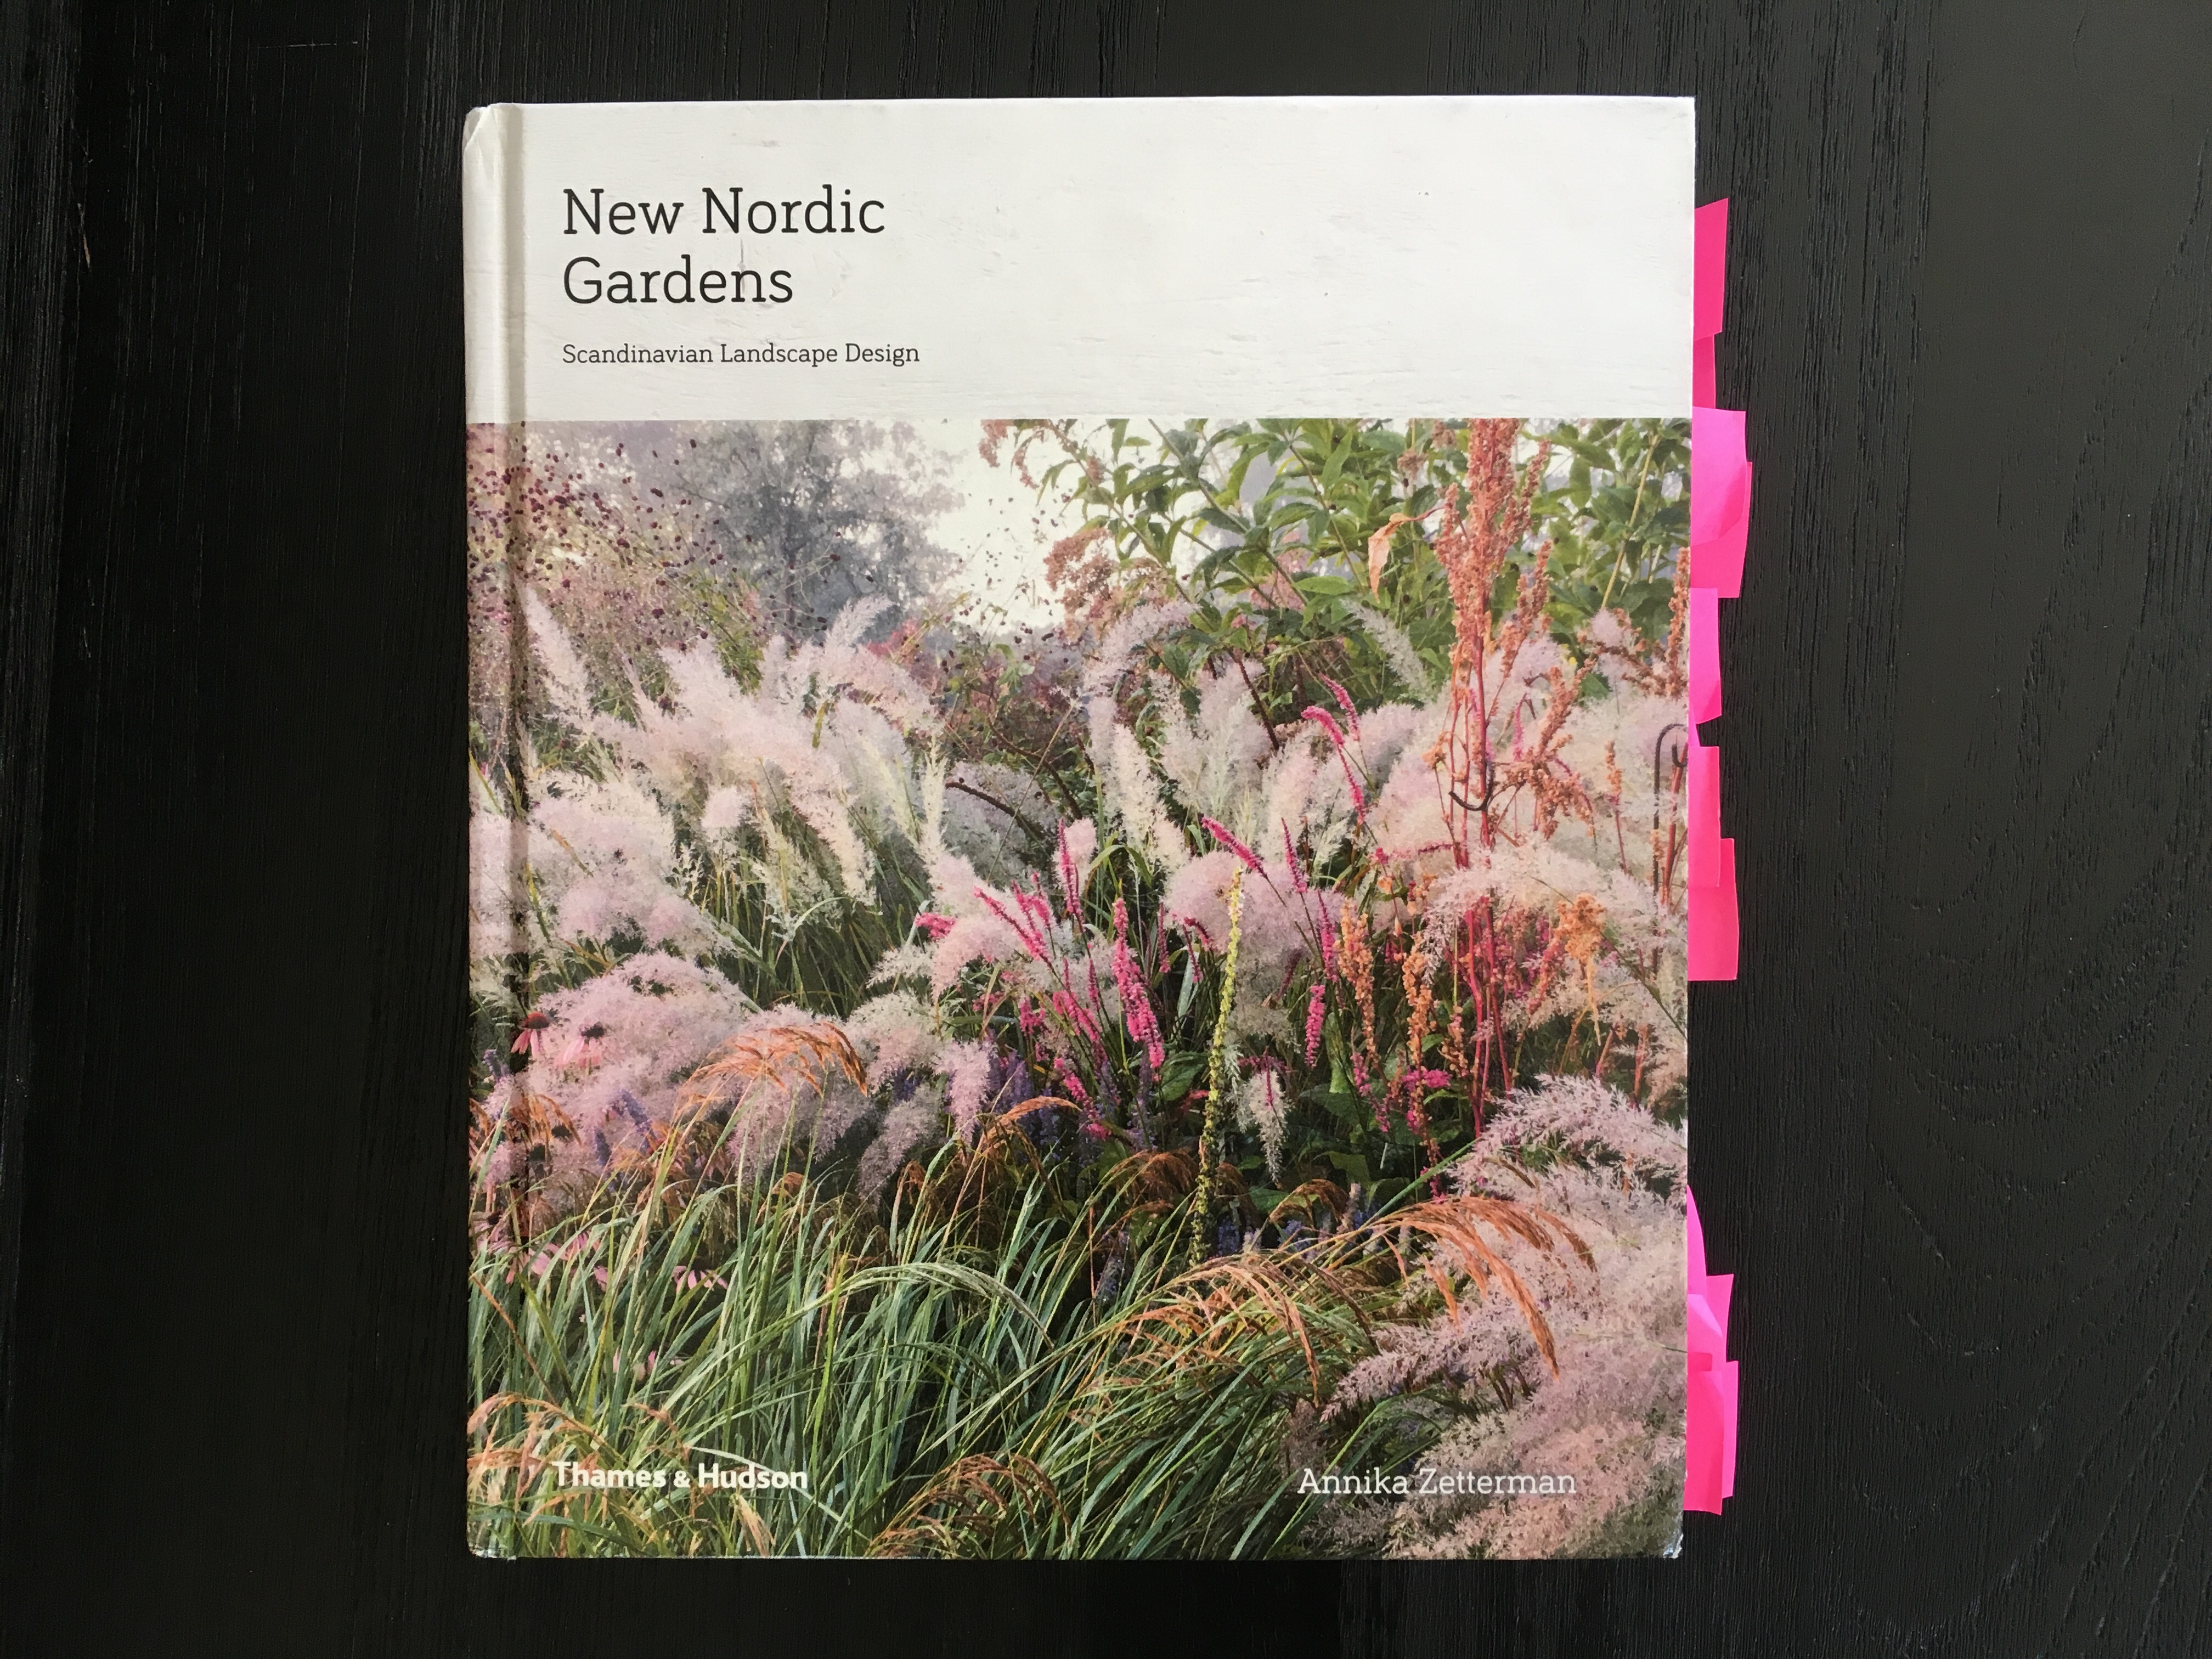 New Nordic Gardens by Annika Zetterman, Thinking Outside the Boxwood